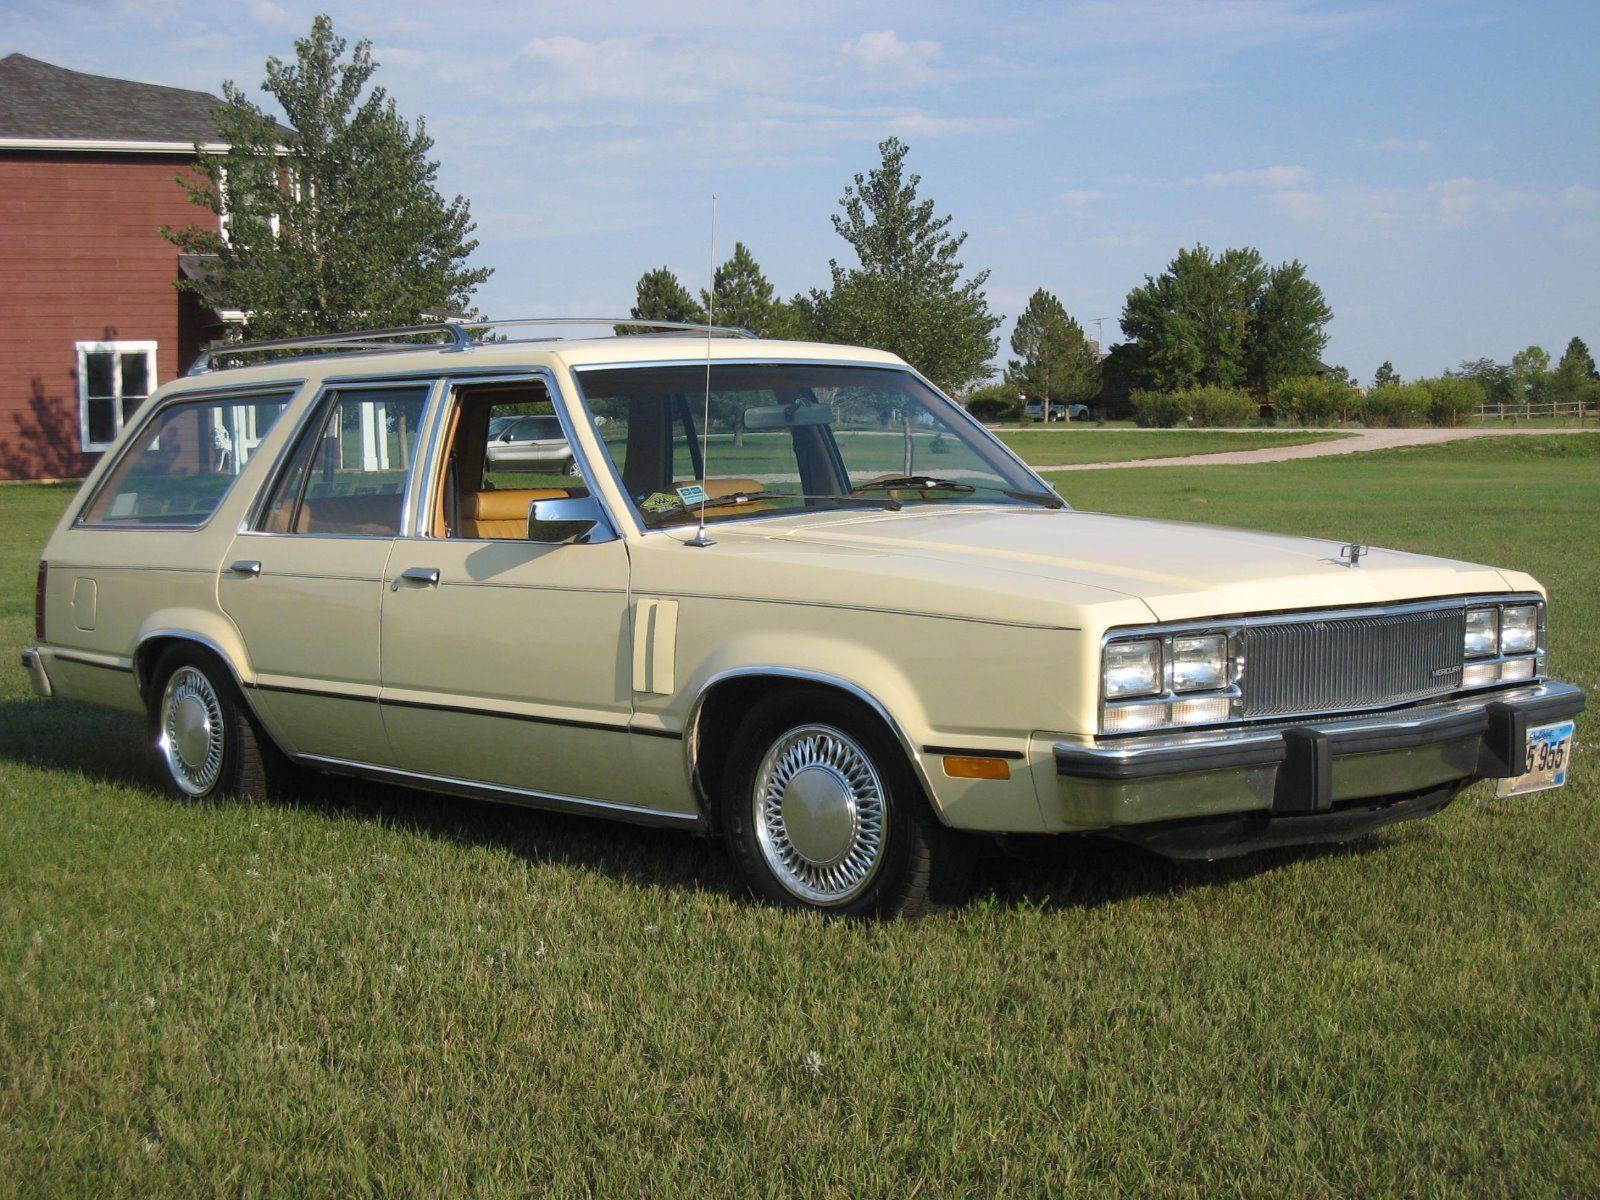 Car Truck Craigslist >> BangShift.com Act Perfectly Normal: This 1978 Mercury Zephyr Station Wagon Is A Sleeper Fan's ...